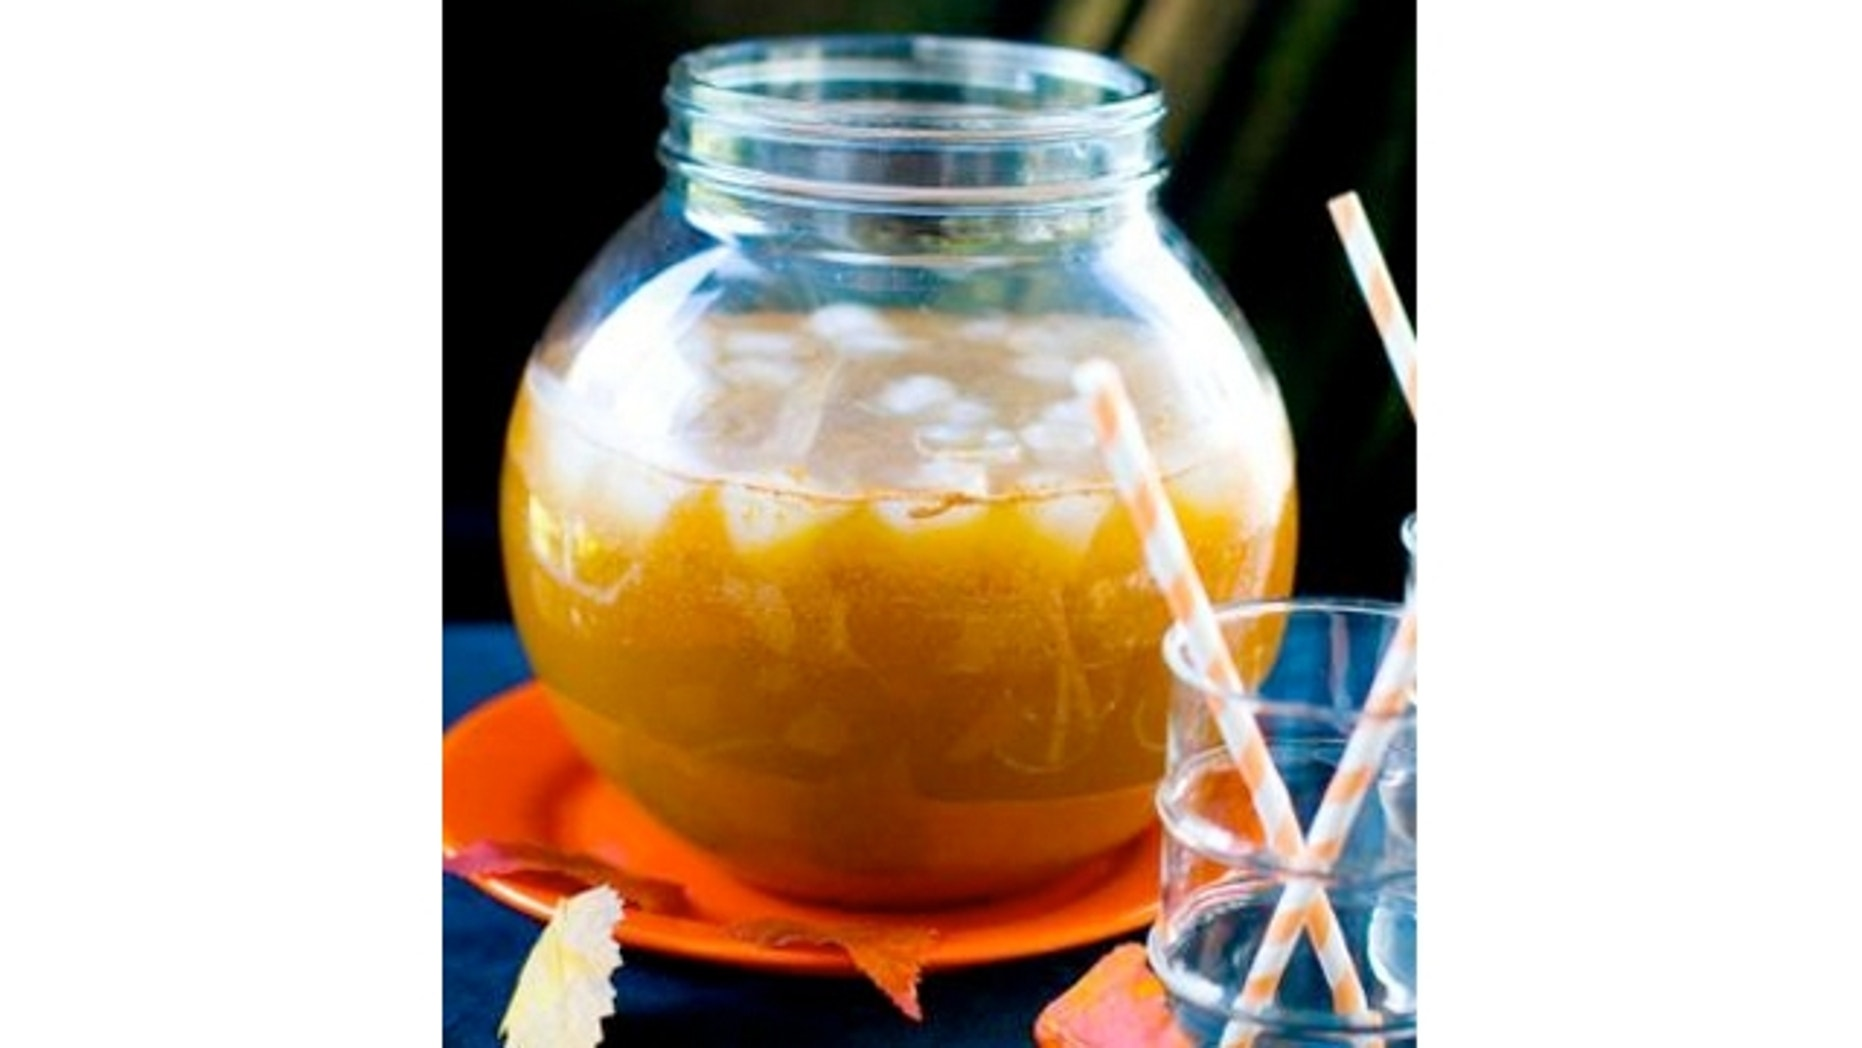 Bloody Cider Punch mixes brandy, schnapps or cordial and apple cider for a refreshing taste that still packs a punch.